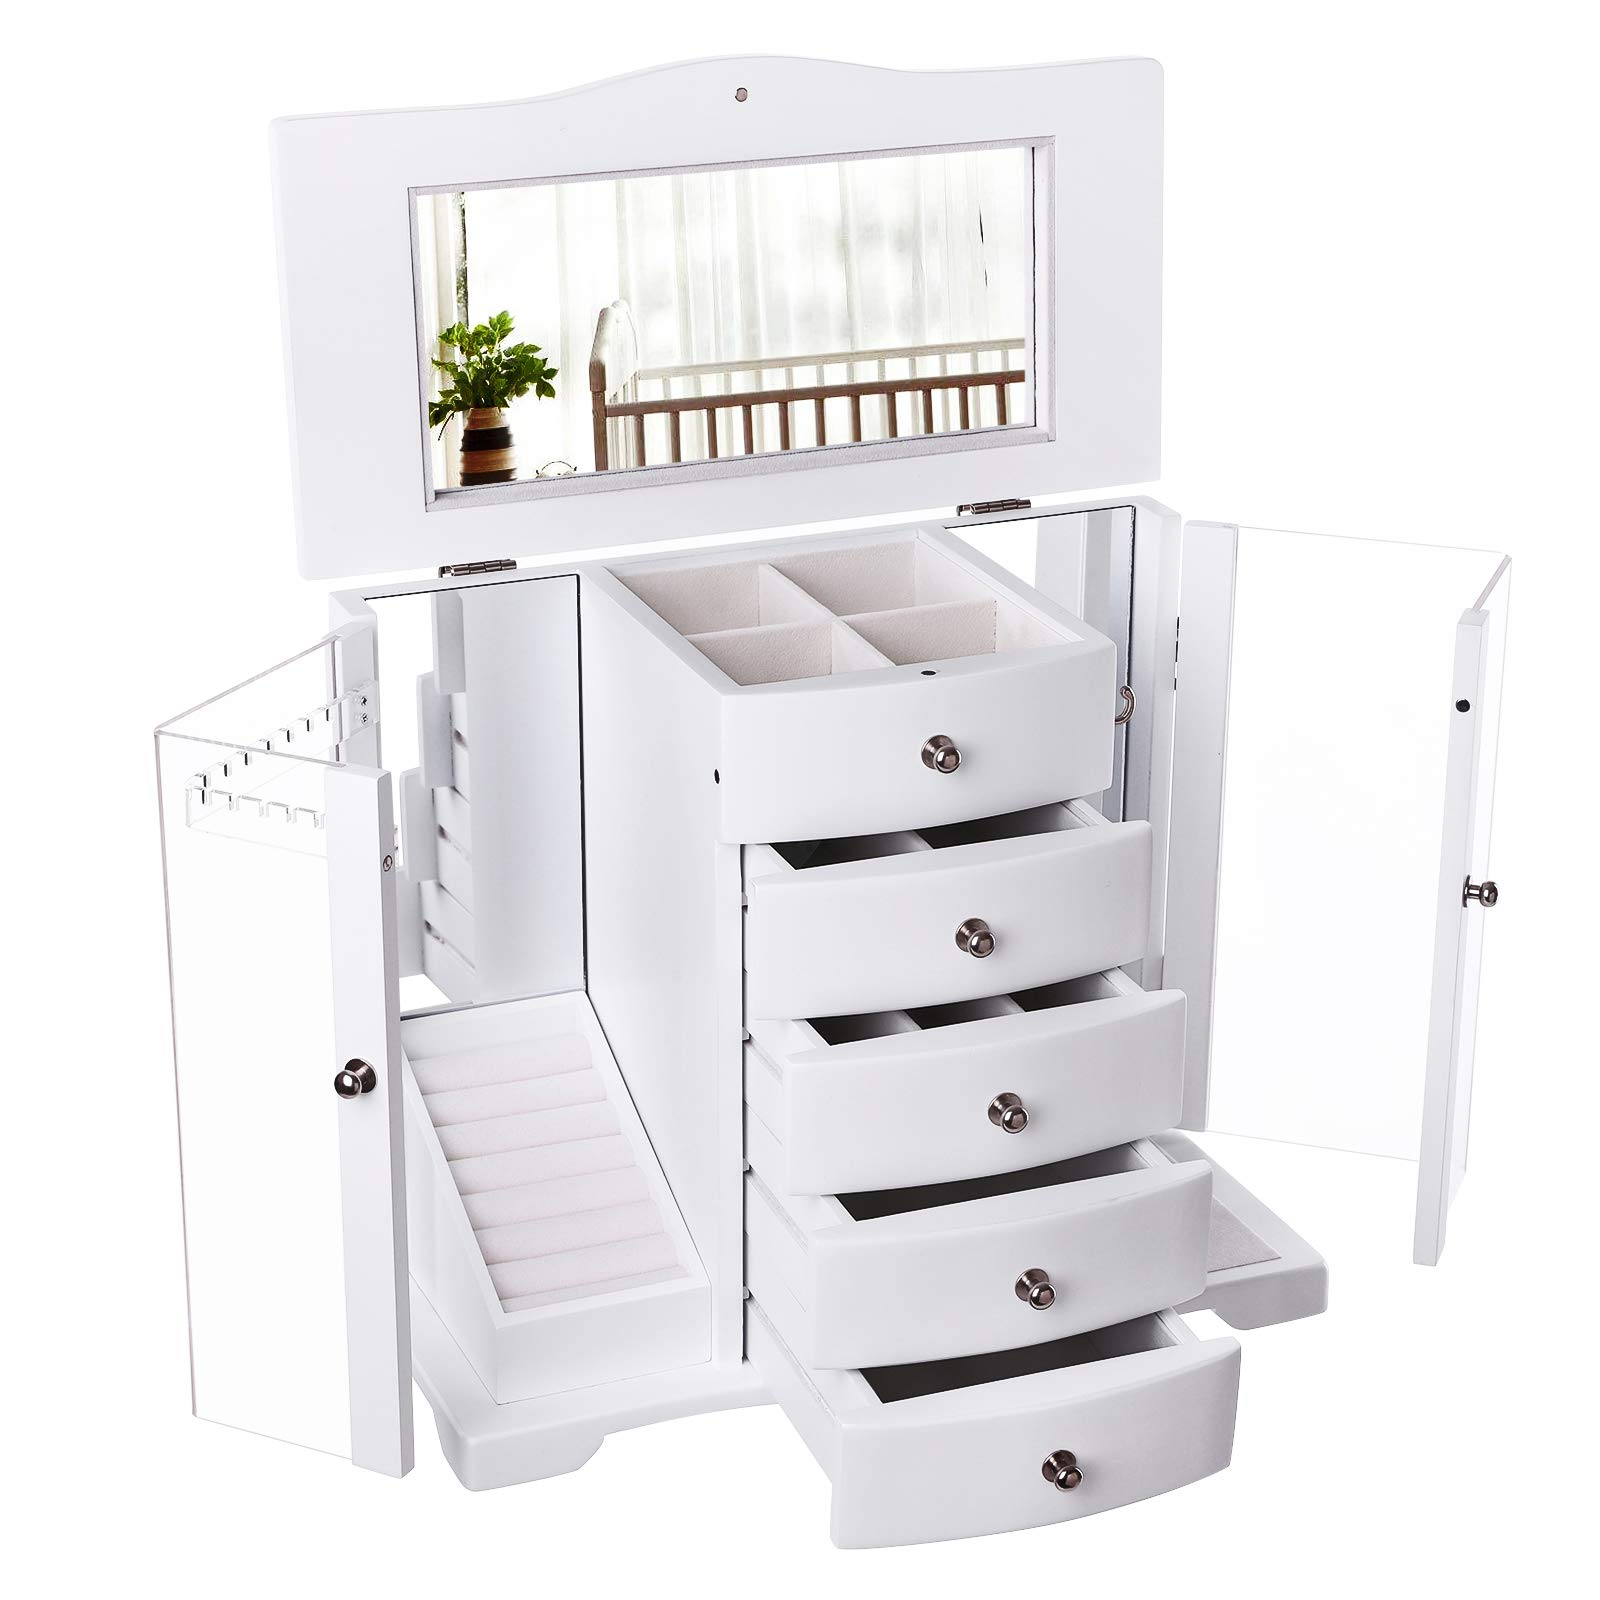 SONGMICS Wooden Jewelry Box Large Organizer with Clear Acrylic Doors and 4 Drawers, White UJOW57W by SONGMICS